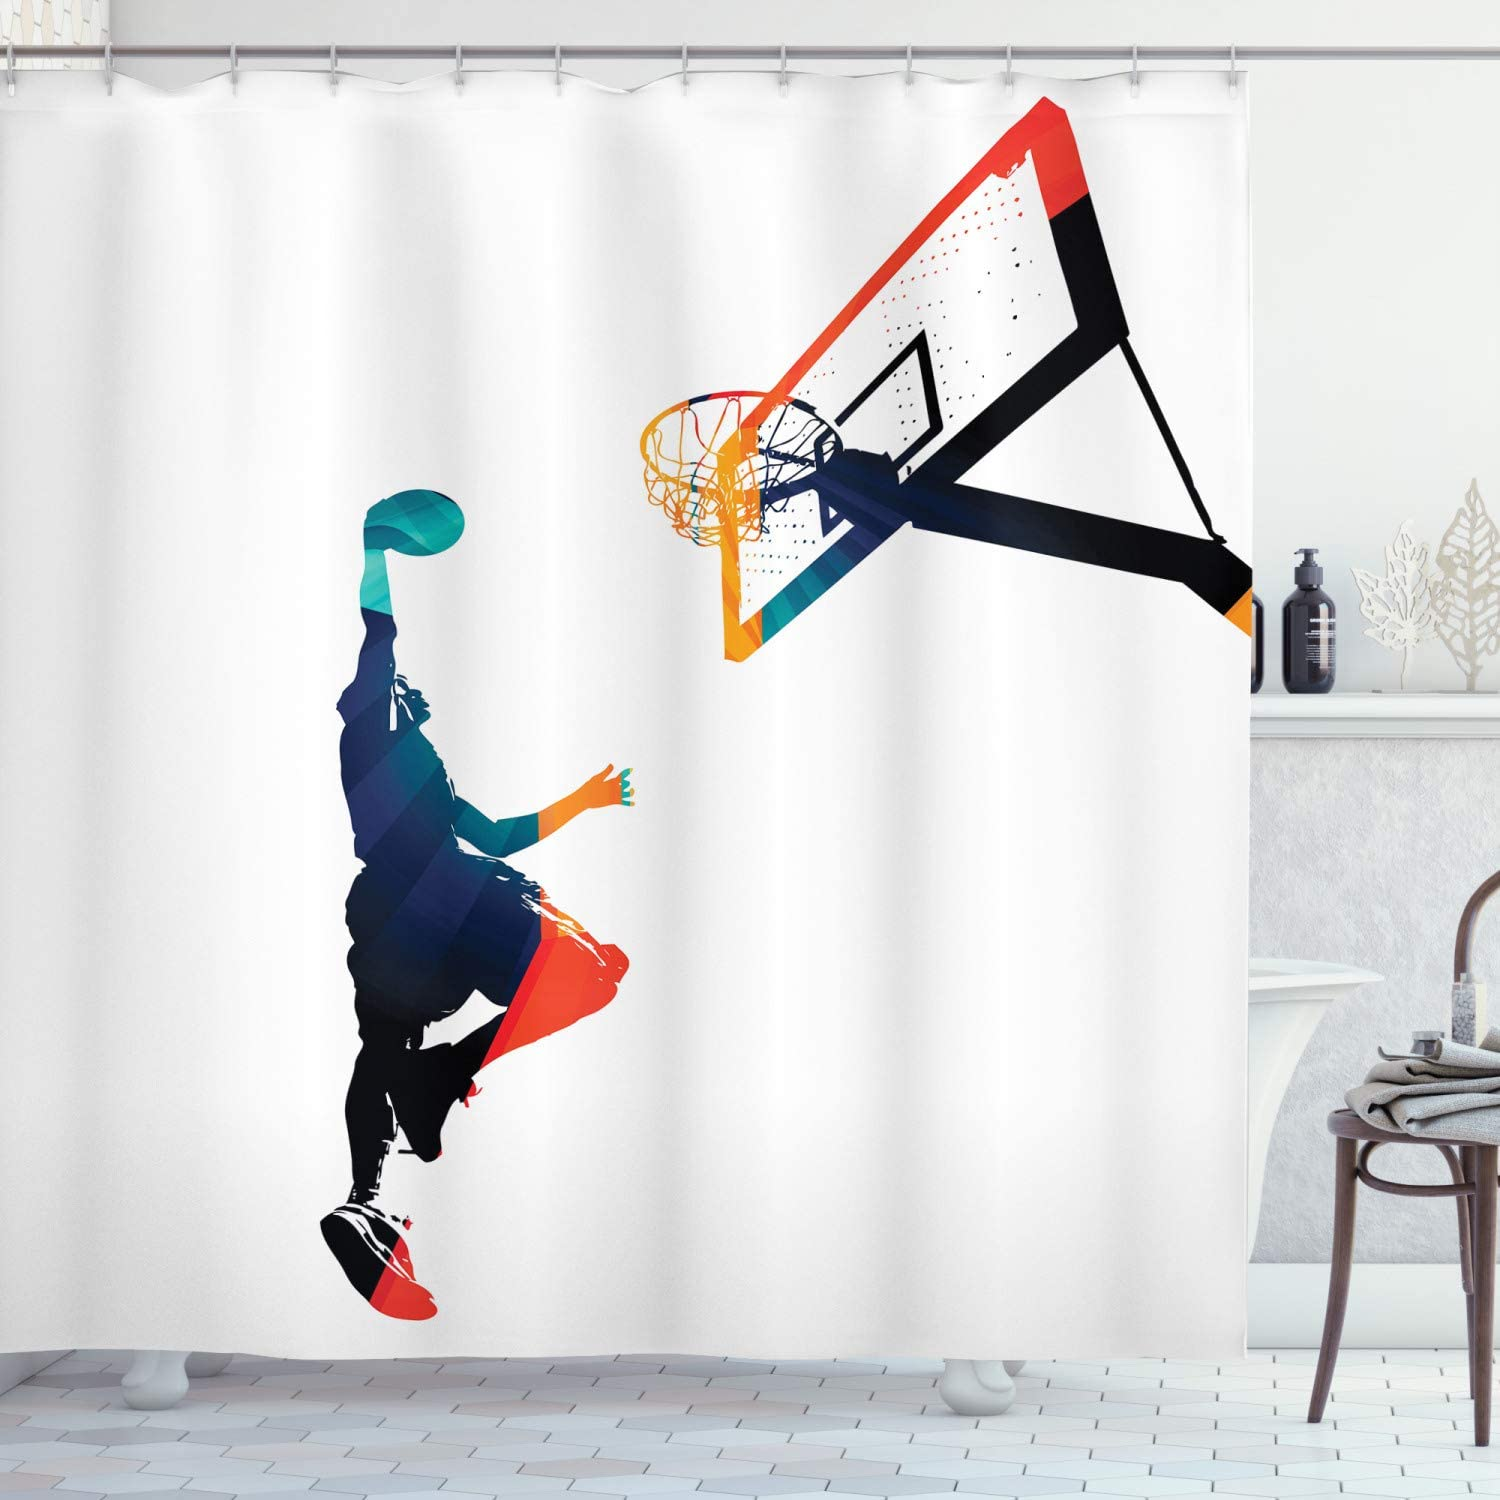 Ambesonne Sports Shower Curtain, High Contrast Silhouette Artwork of an Athlete Slam Dunking Basketball, Cloth Fabric Bathroom Decor Set with Hooks, 84